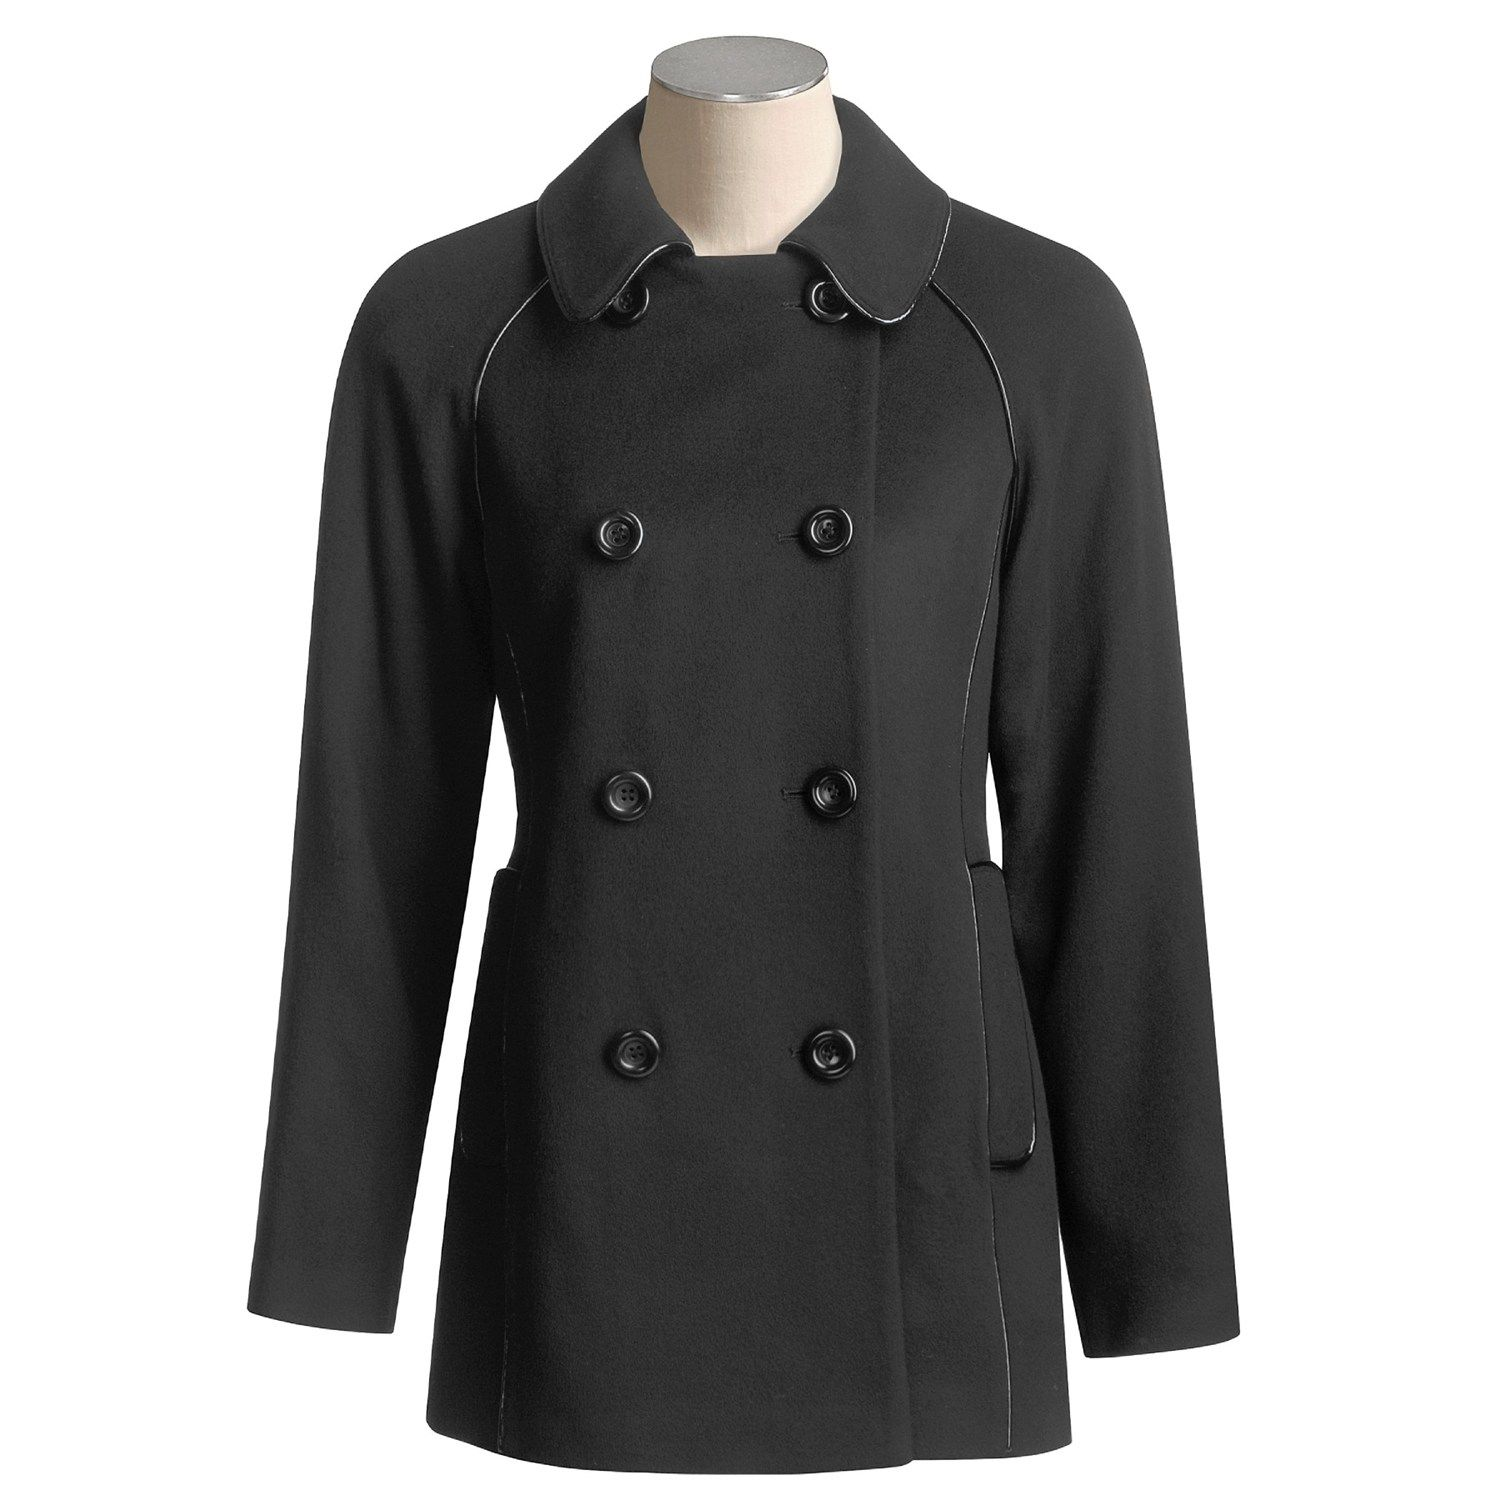 Jonathan Michael Lambswool Jacket - Double-Breasted (For Women) in Black